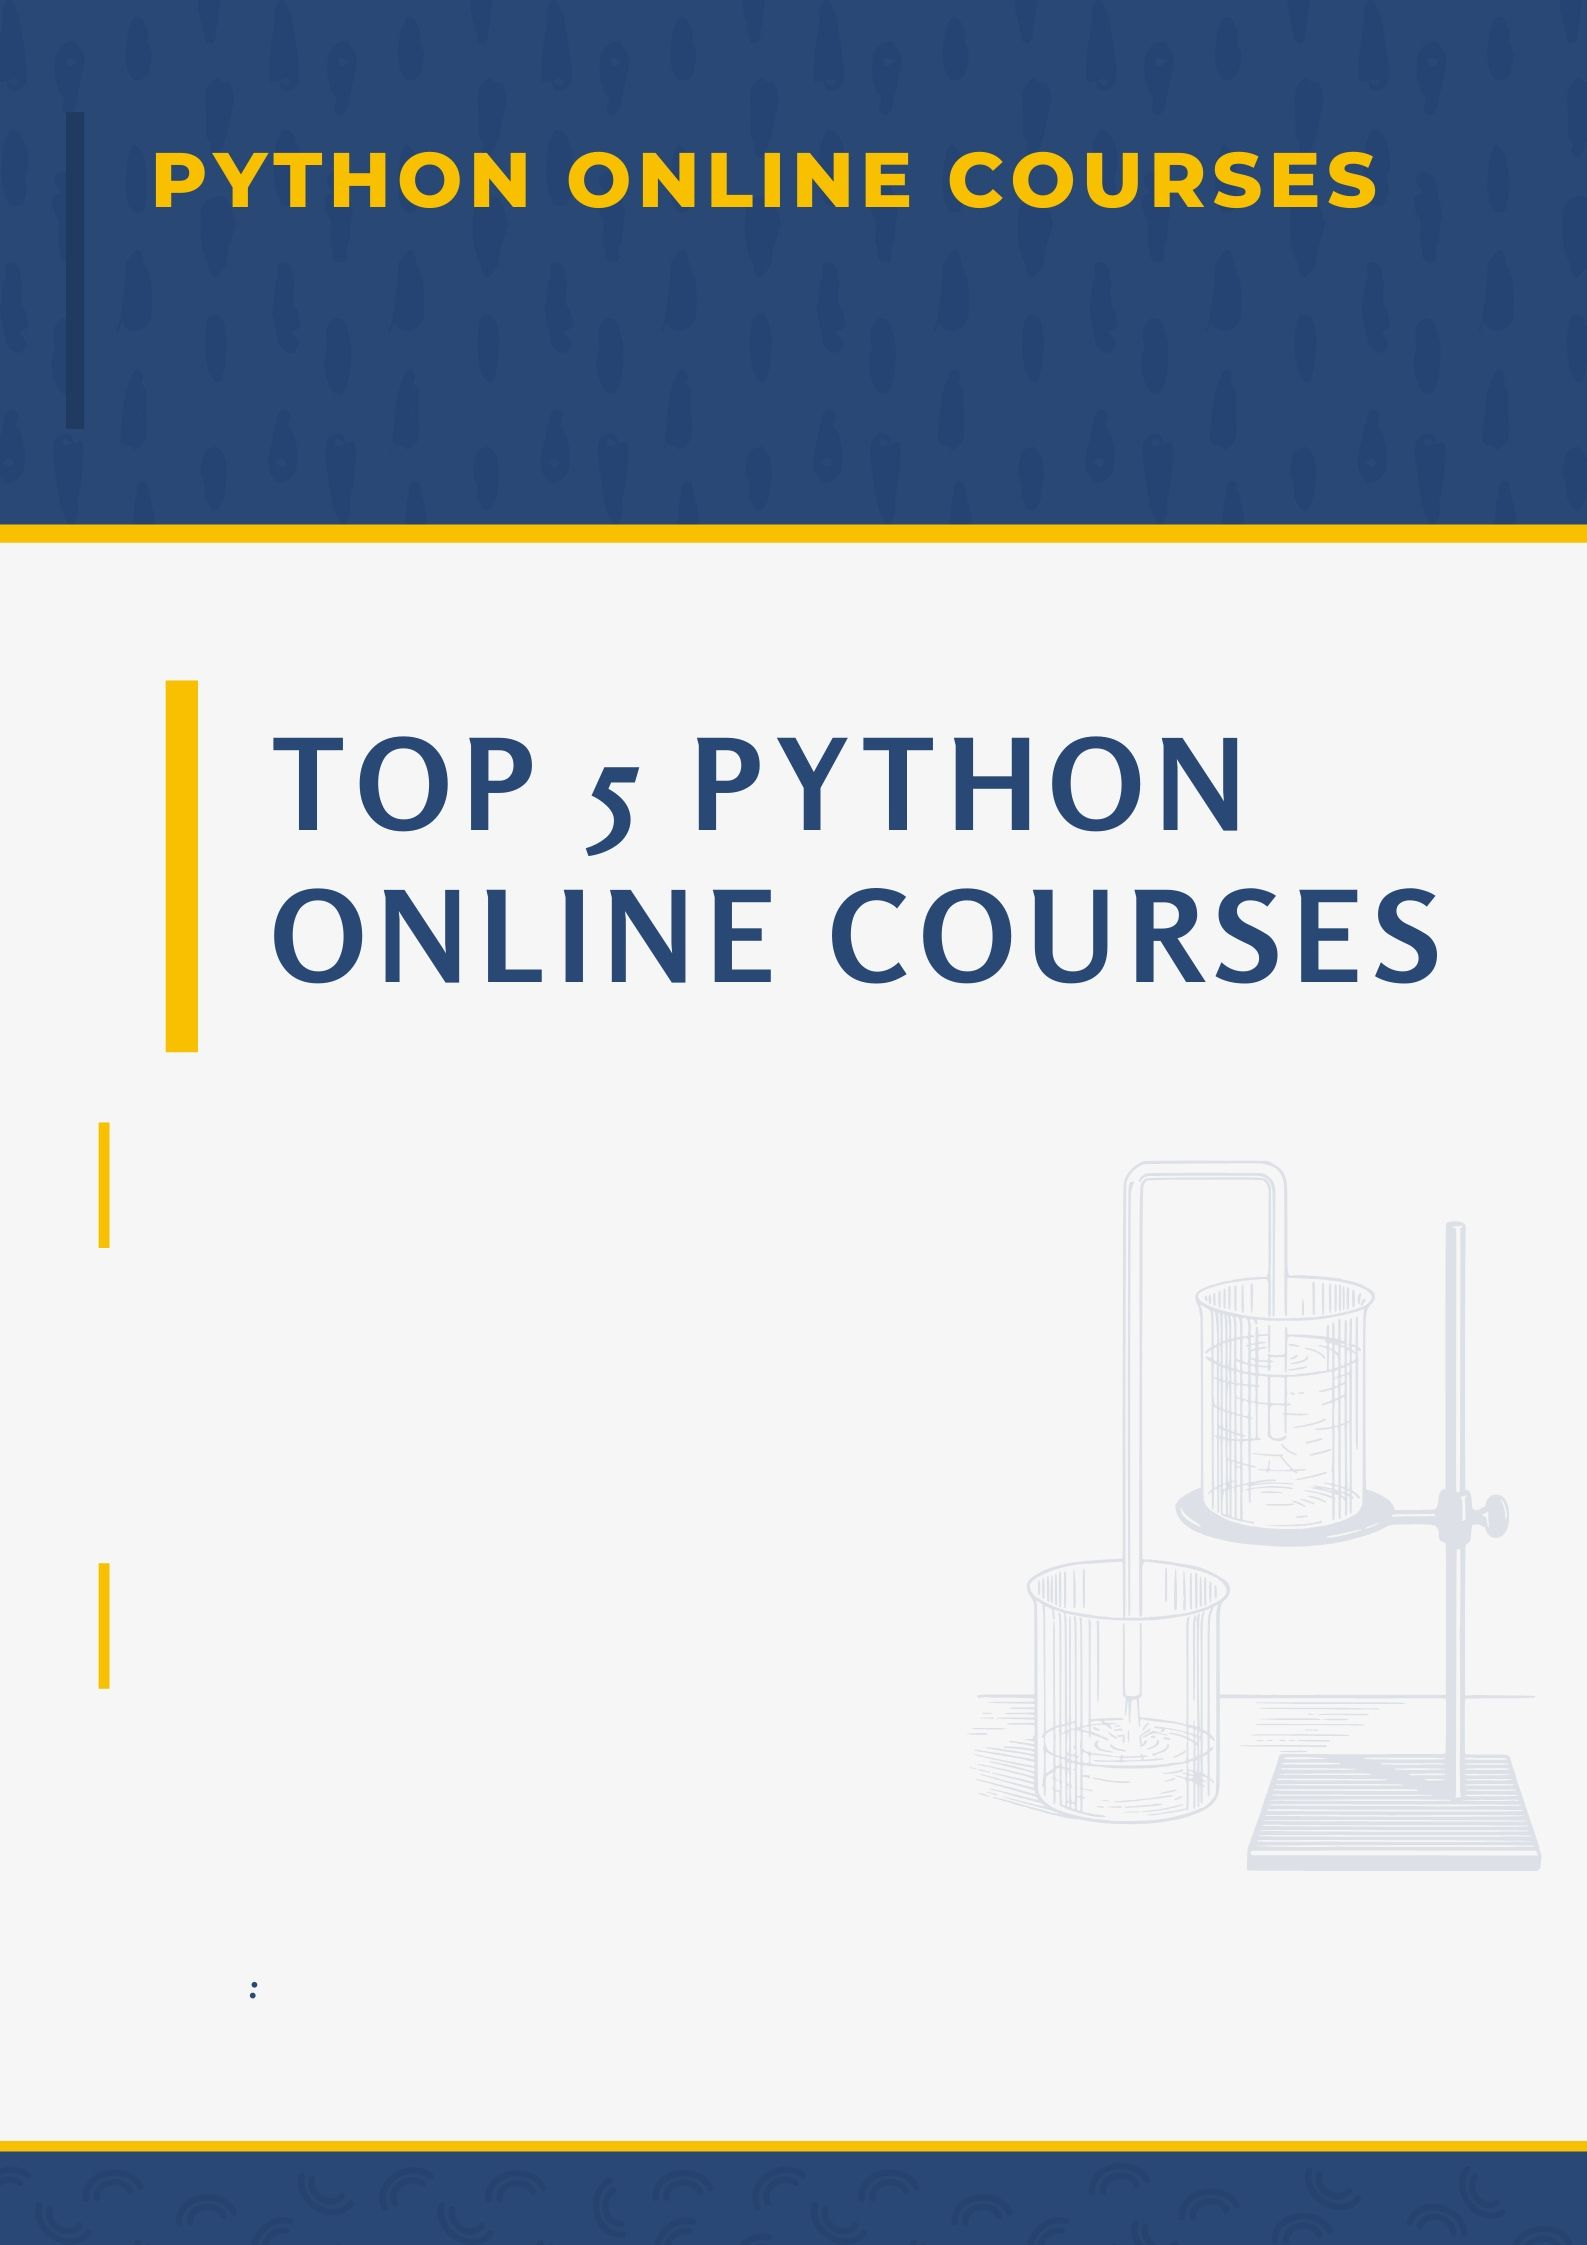 Top 5 Python Online Courses For Beginners In 2020